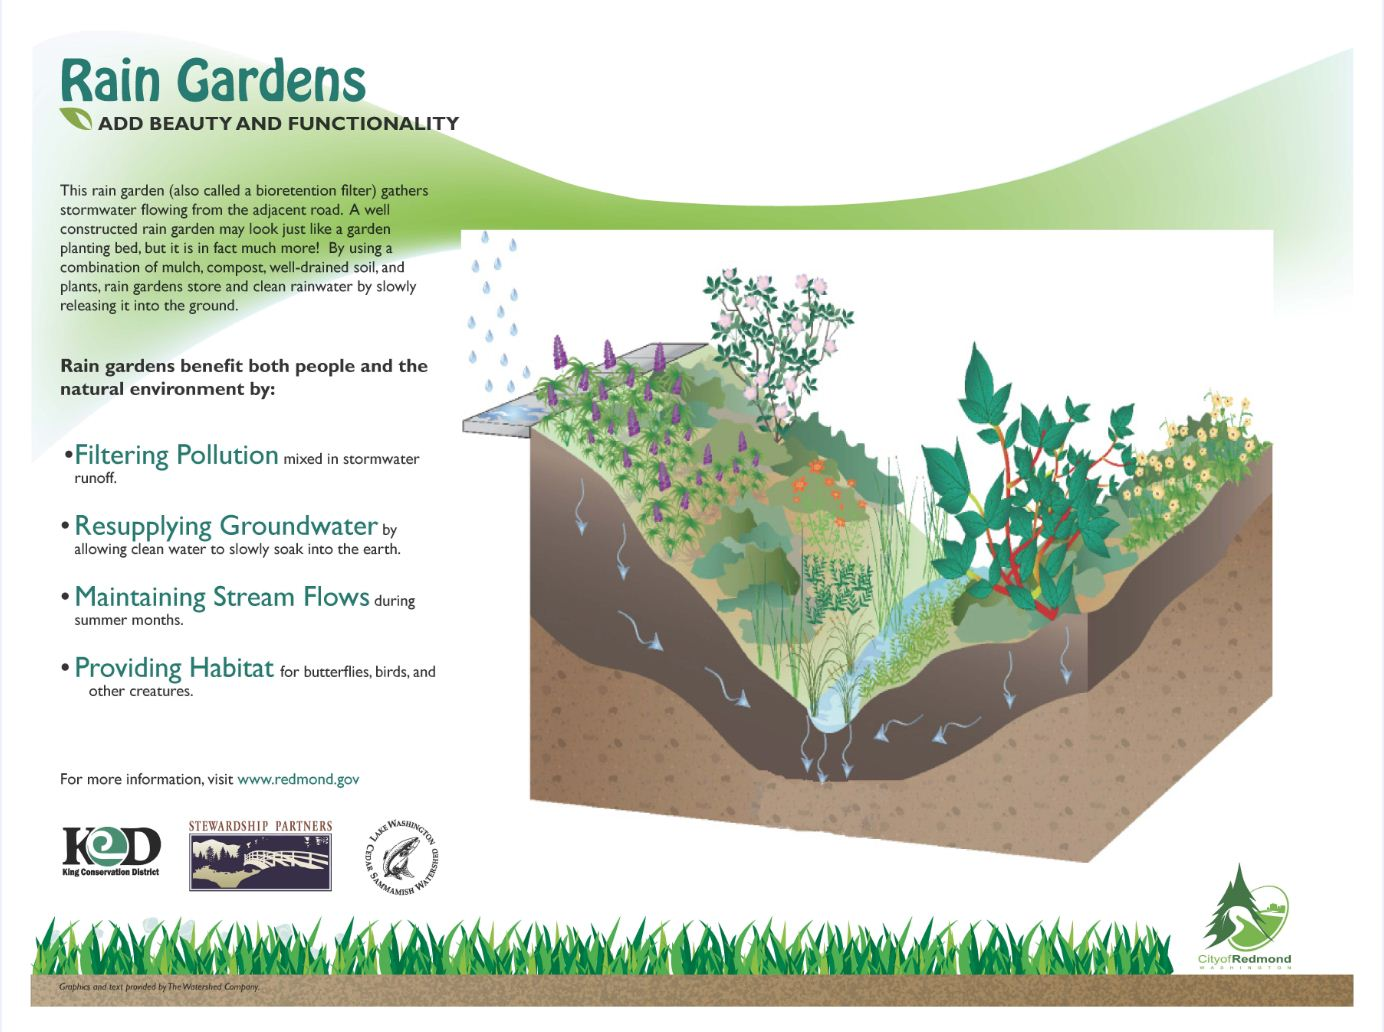 Resource Liry | 12,000 Rain Gardens on rain art drawings, rain gutter downspout design, dry well design, rain roses, rain water design, french drain design, rain construction, rain illustration, rain barrels, gasification design, bioswale design, rain gardens 101, rain harvesting system design,